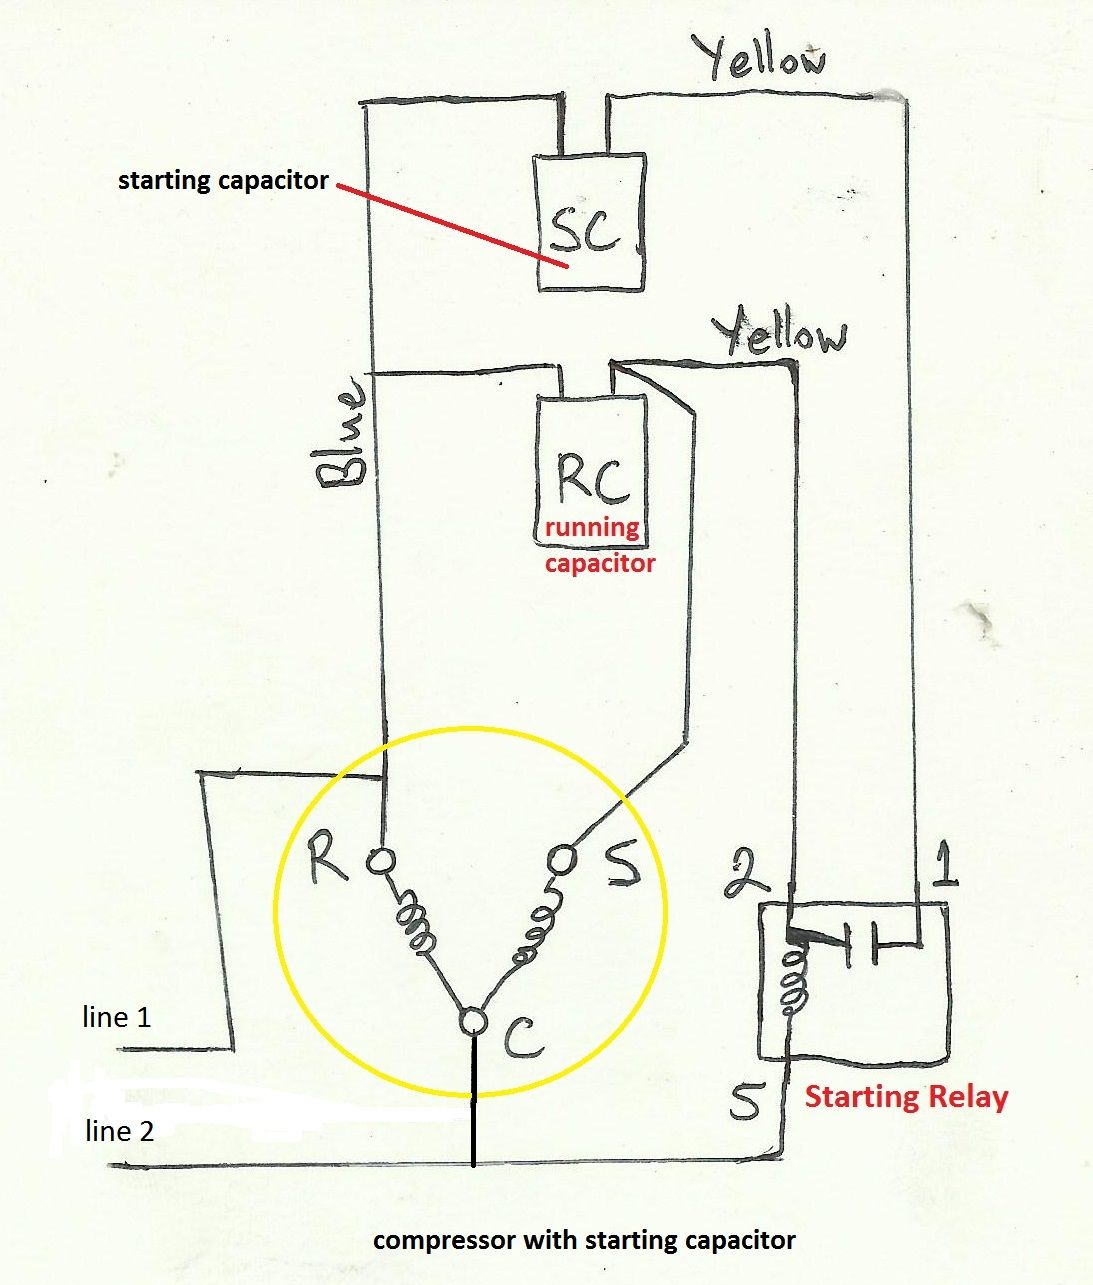 Air Conditioning Compressor Wiring Diagram - 2.xeghaqqt ... on air compressor schematic diagram, air compressor ignition switch, air compressor with 220v wiring, air conditioning compressor wiring diagram, air compressor starter wiring diagram, air compressor chevy, air conditioner capacitor diagrams, air compressor relay wiring, air compressor electrical wiring, air compressor switch wiring, air compressor motor schematic, air compressor magnetic starter wiring, air compressor system diagram, air conditioner compressor wiring diagram, air compressor 240v wiring-diagram, air bag compressor wiring diagram, air compressor troubleshooting, air compressor manual, air compressor speaker, air compressor mounting hardware,